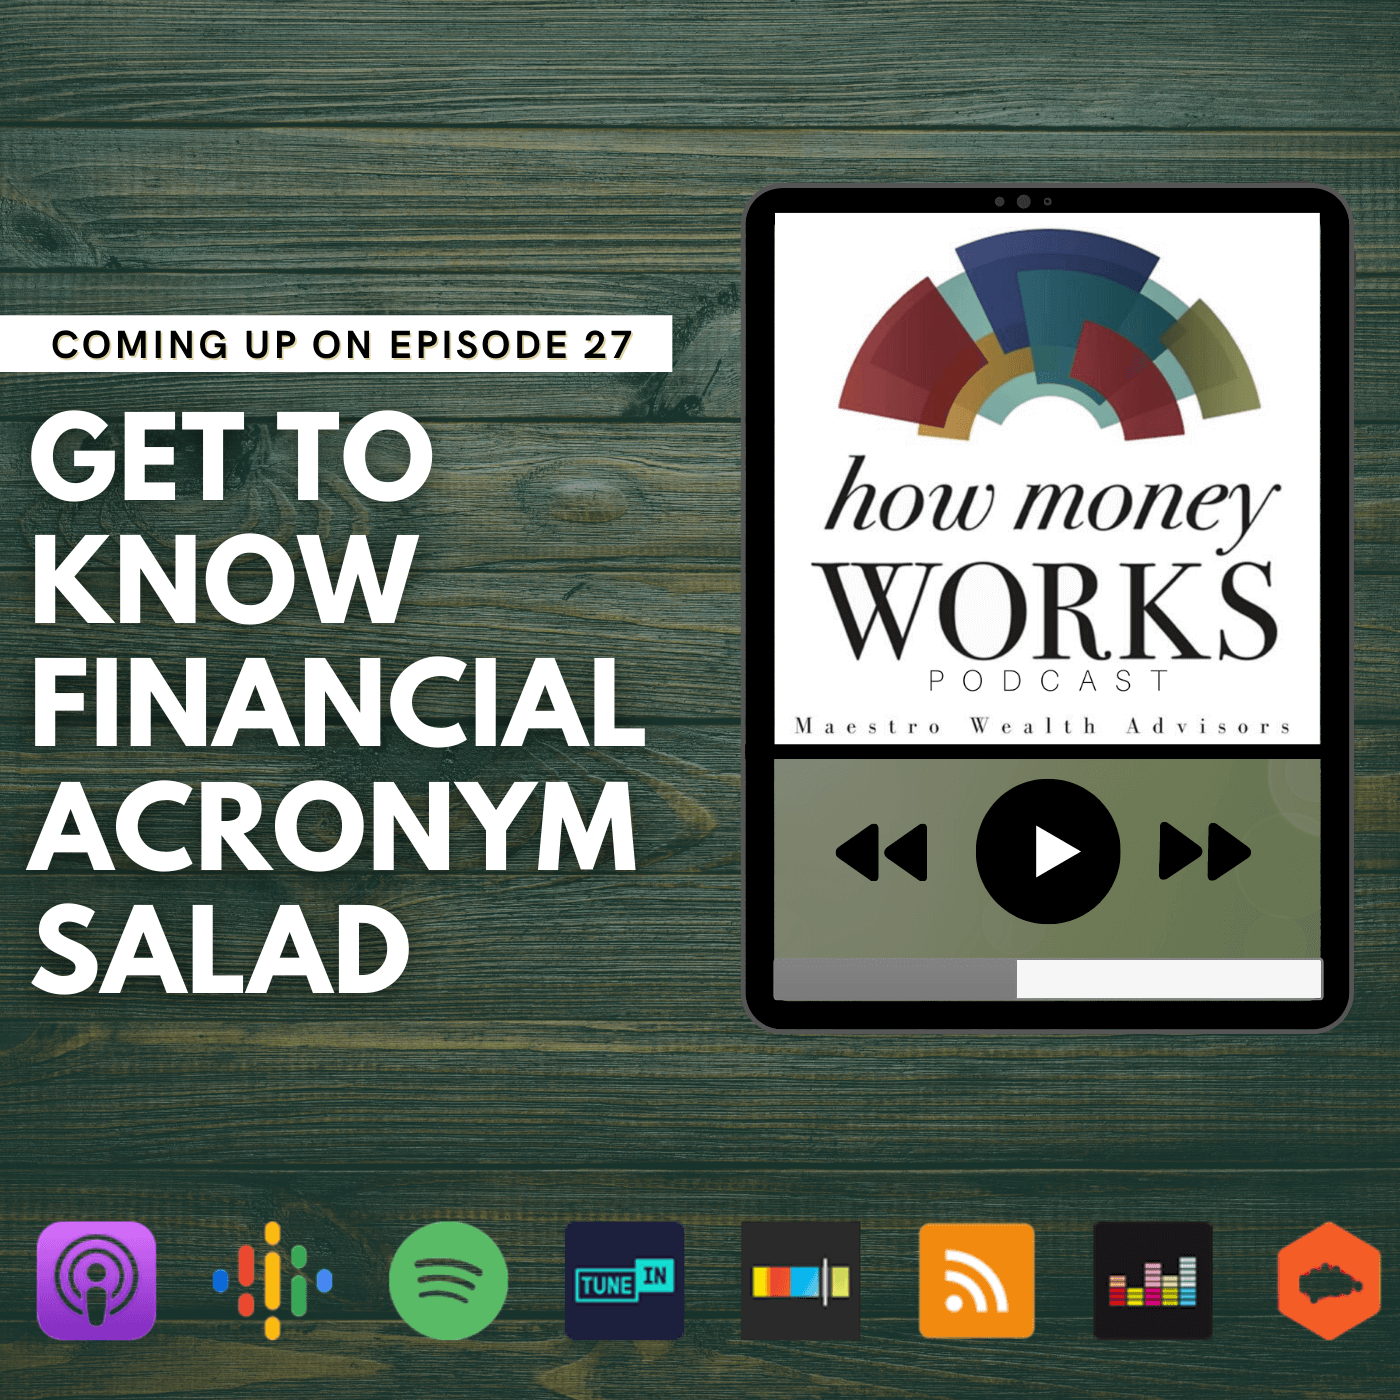 Get to Know Financial Acronym Salad